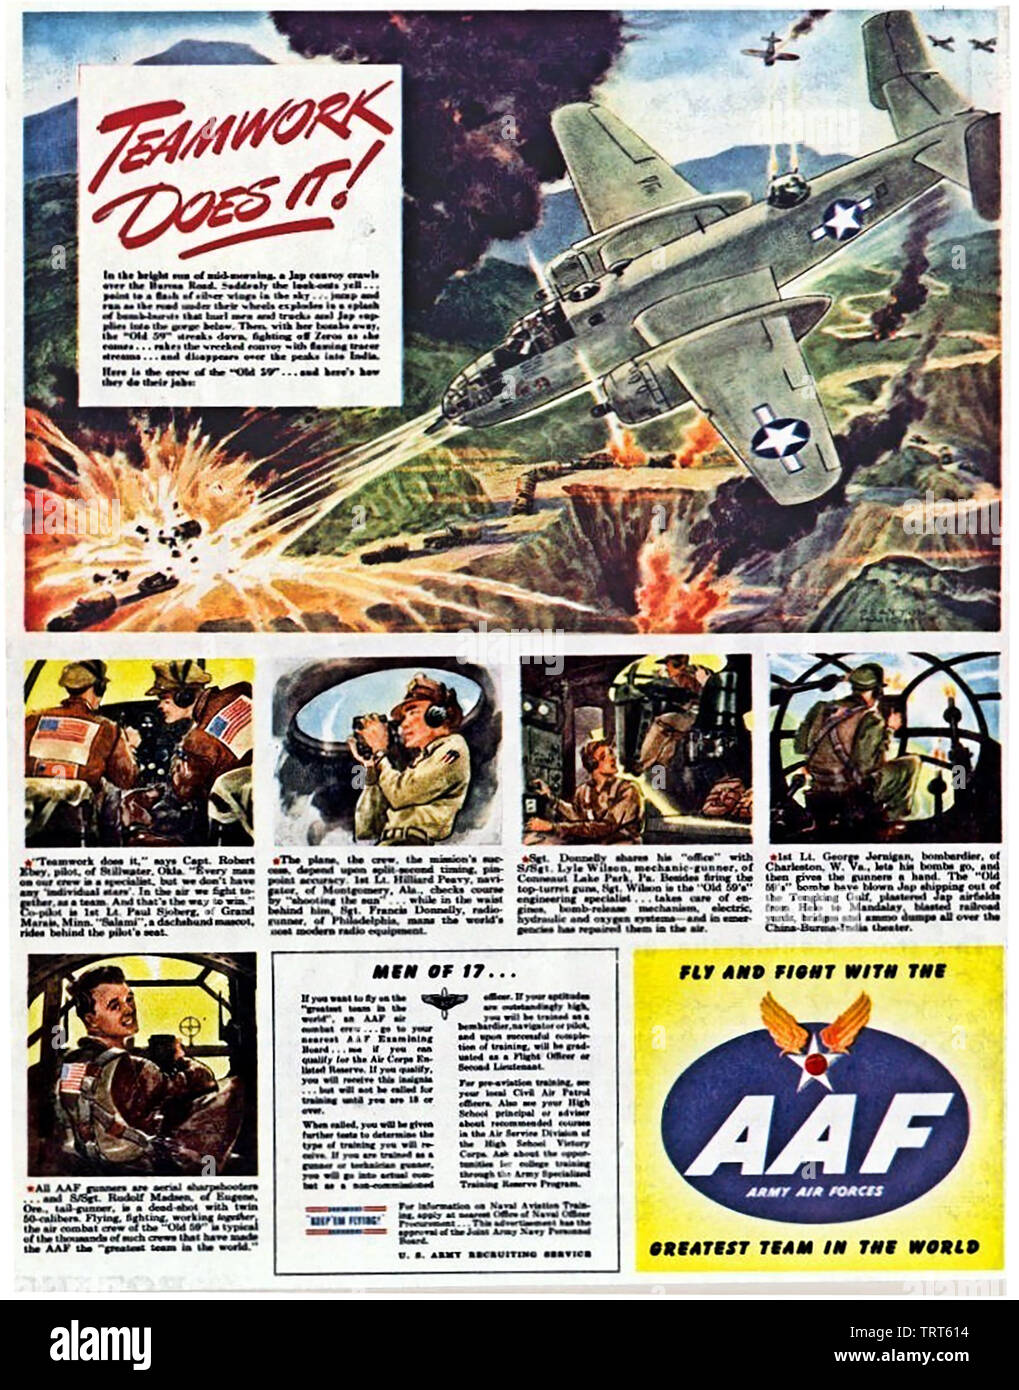 AMERICAN AIRFORCE RECRUITING POSTER about 1944 - Stock Image